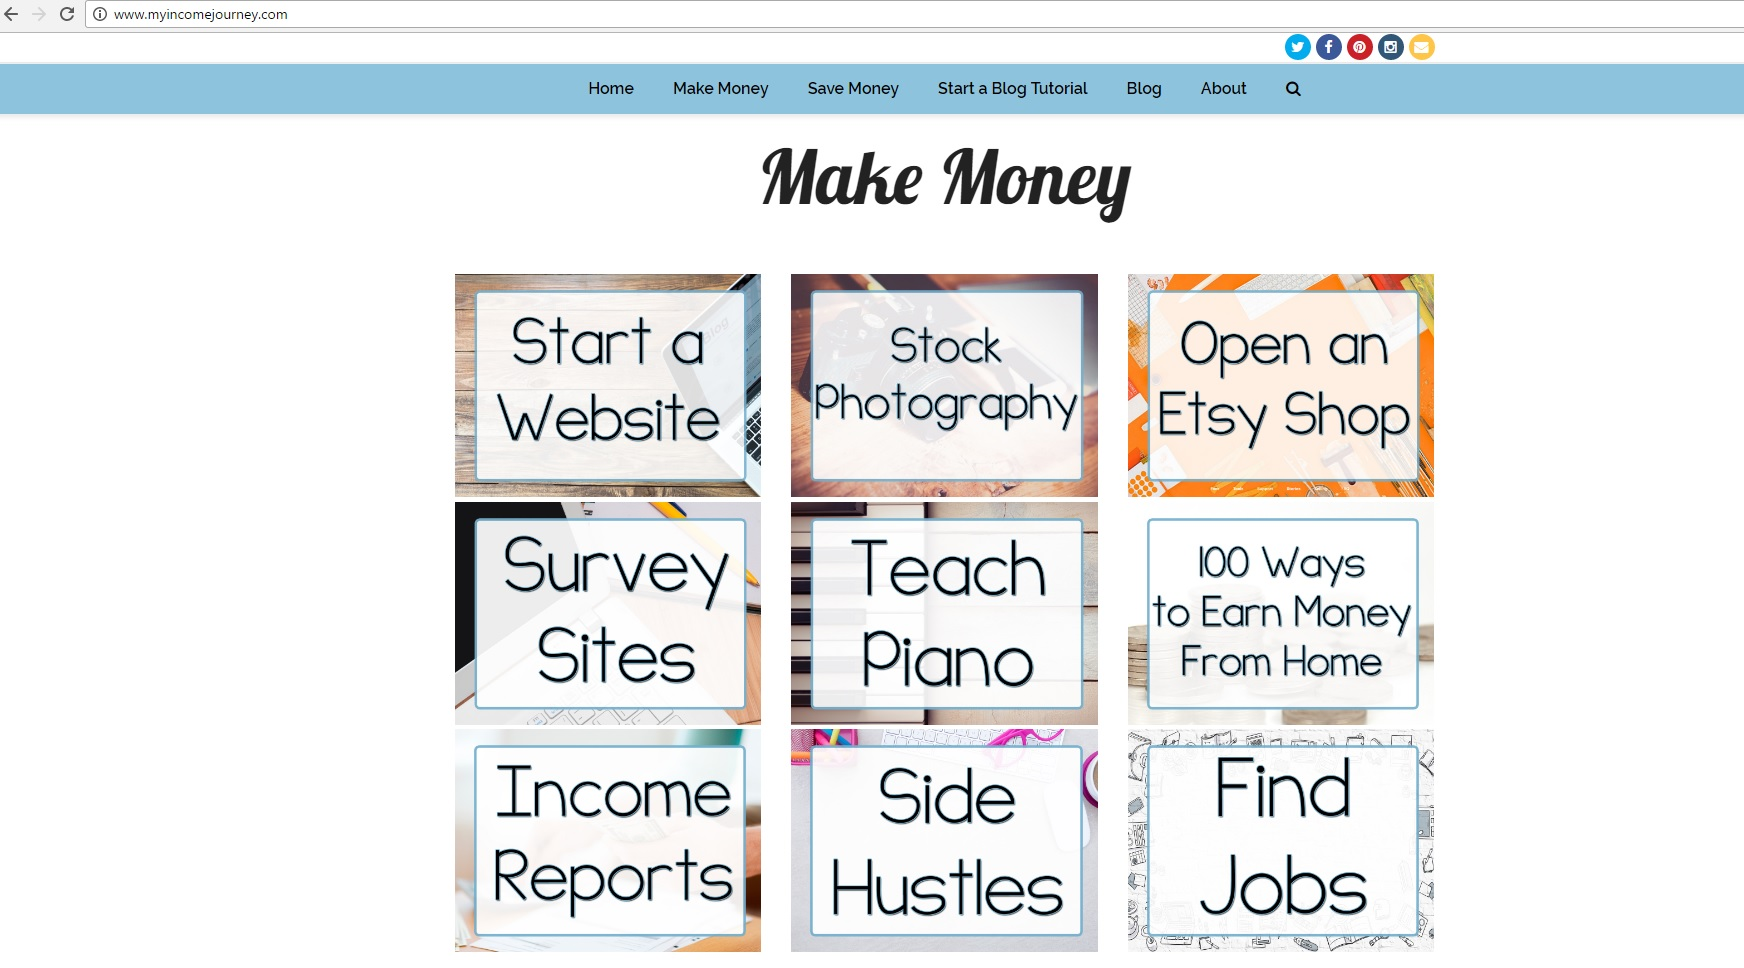 My Income Journey's New Look